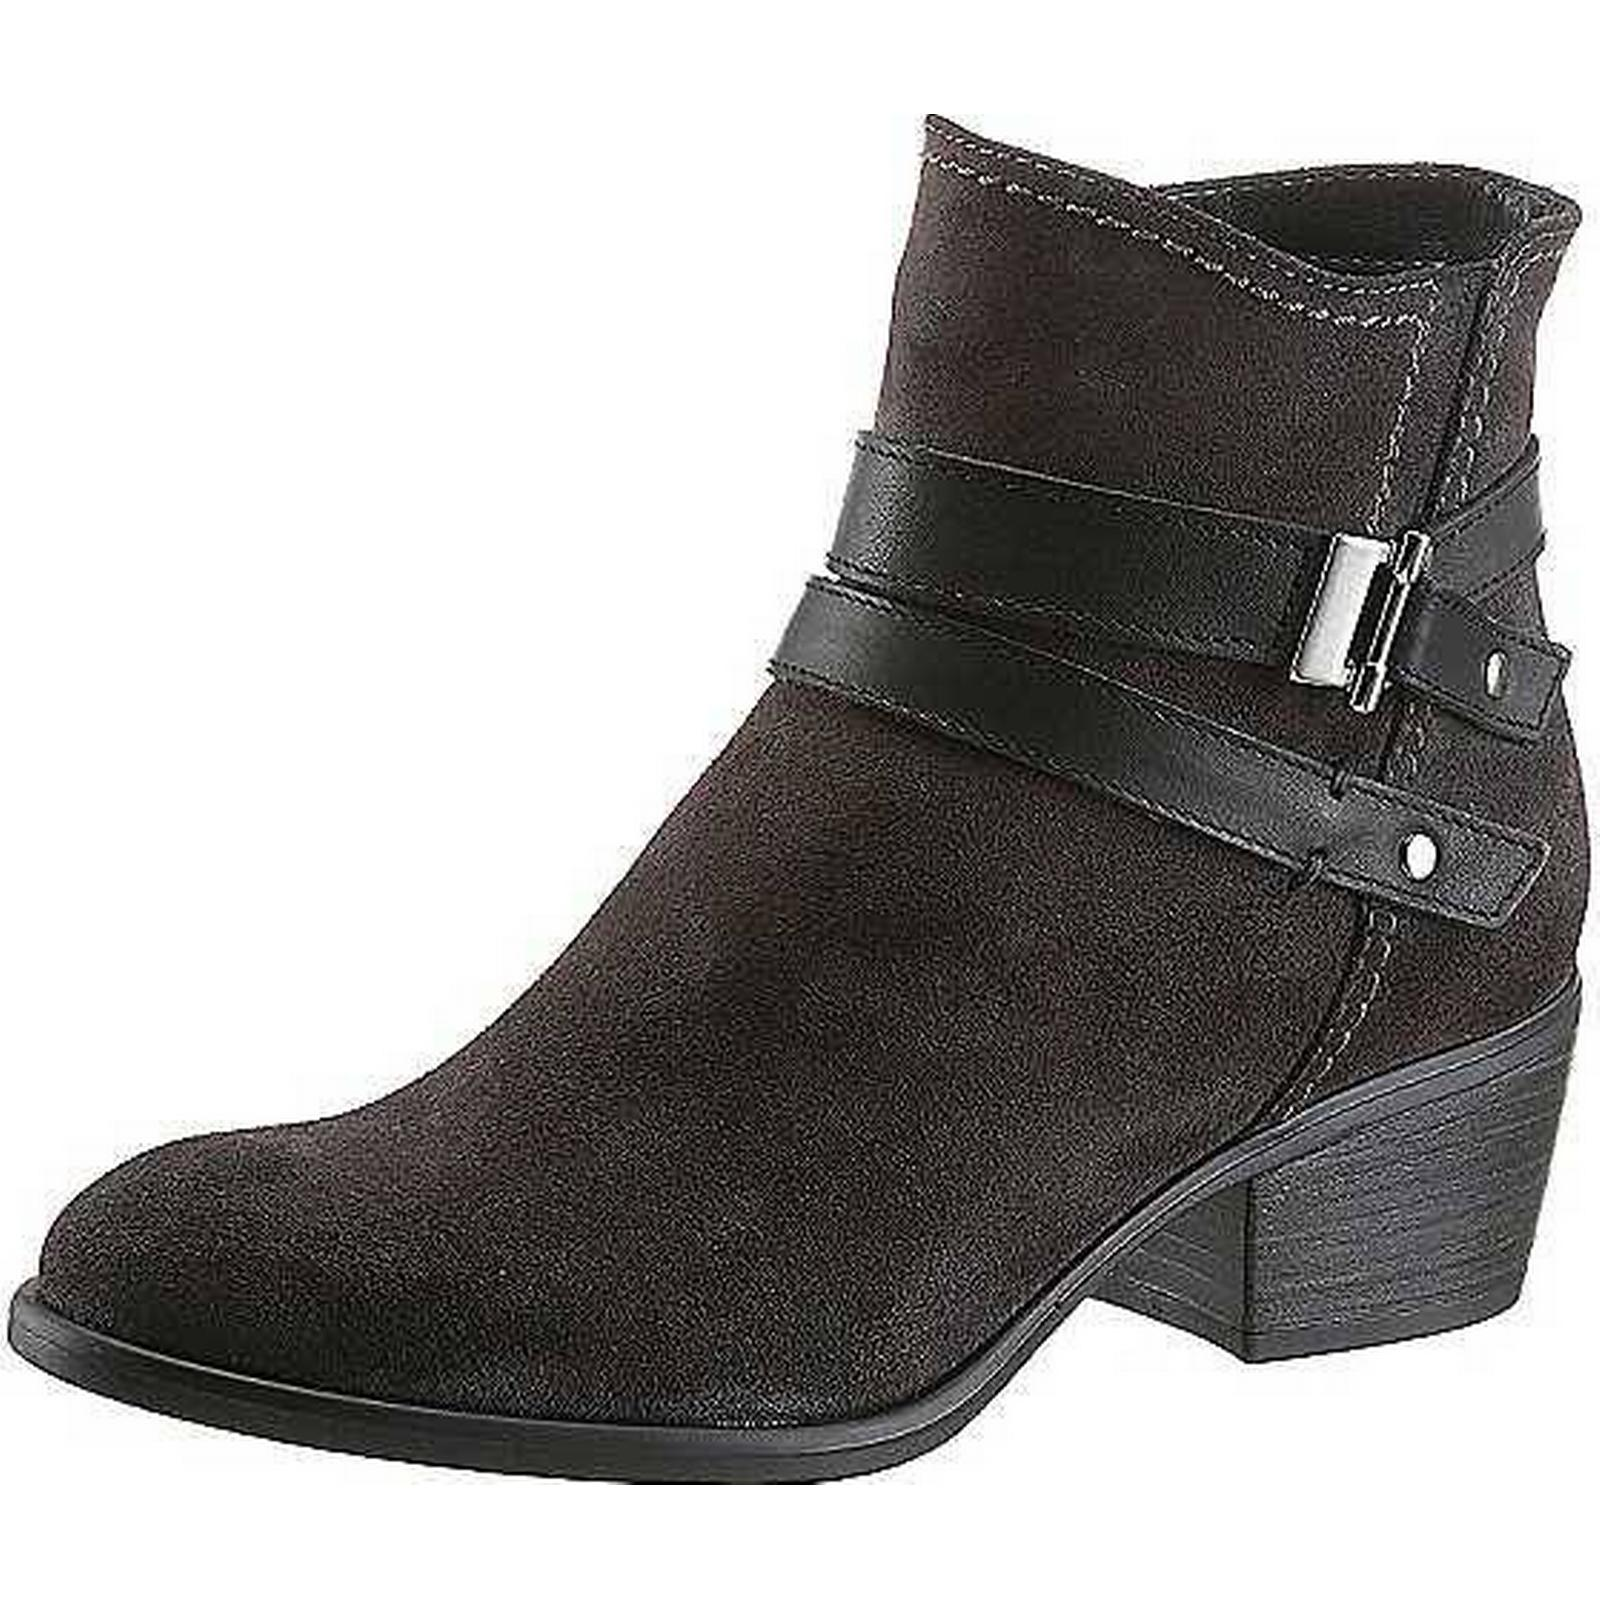 Tamaris Tamaris-Man/Woman-Low Suede Ankle Boots By Tamaris-Man/Woman-Low Tamaris cost 6897d3